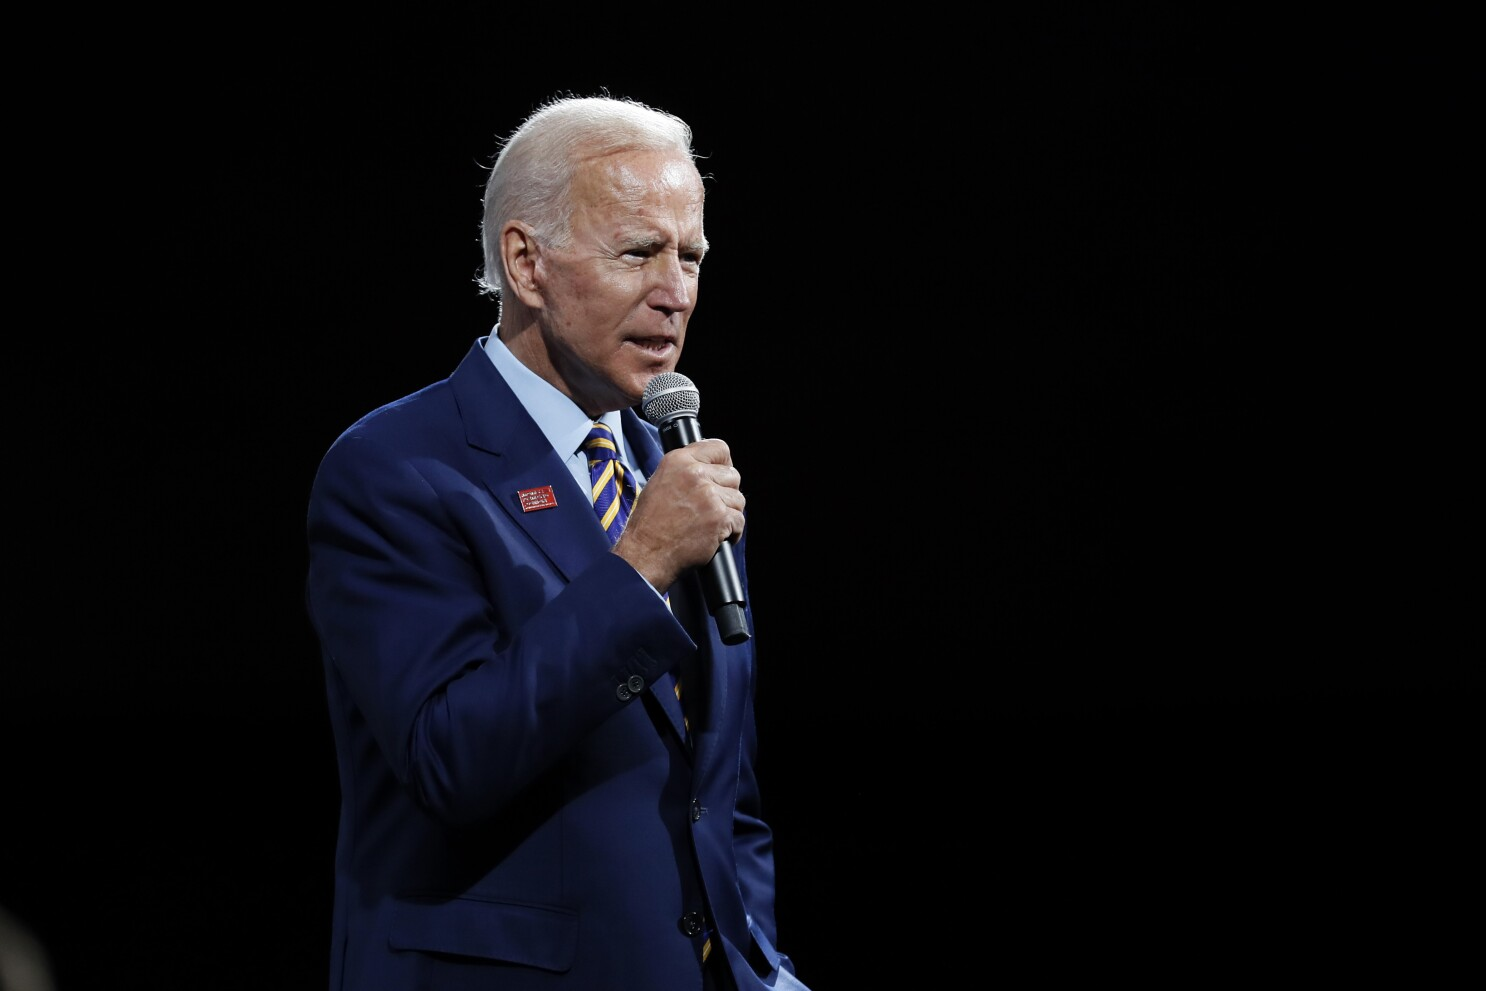 With rivals heading to California, Biden eyes New Hampshire